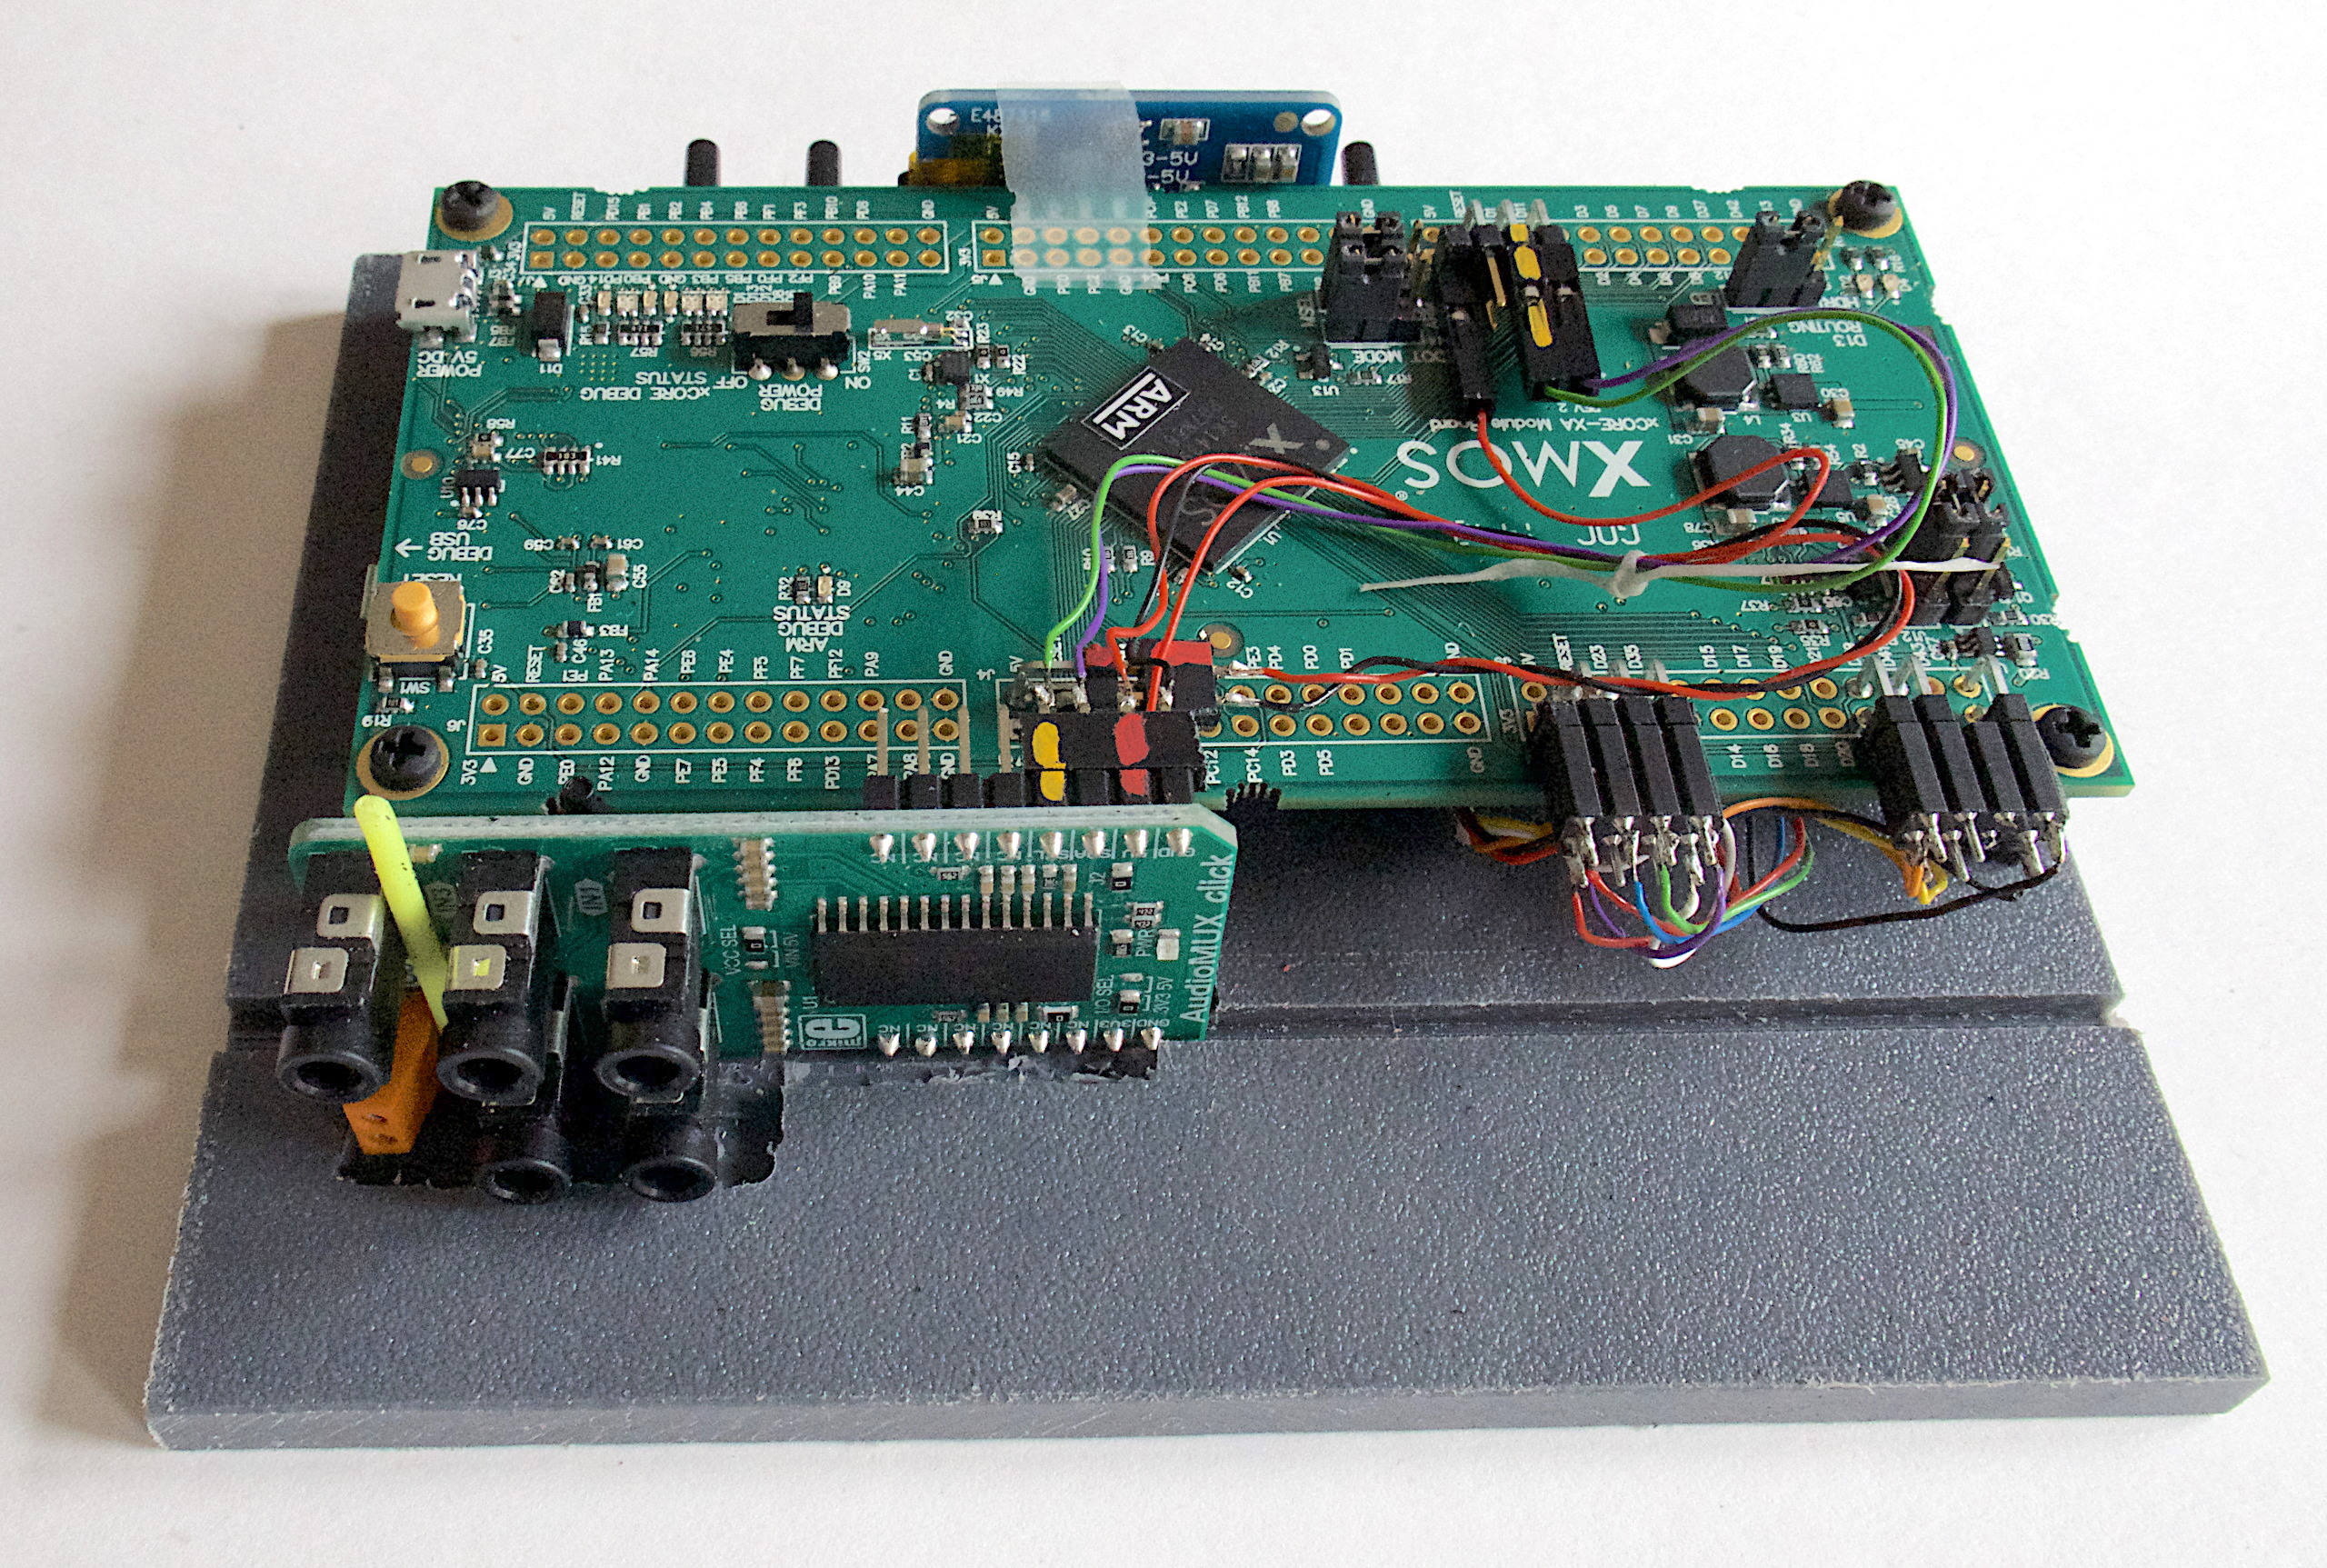 Fig.2 - XMOS' obsoleted xCORE-XA Core Module plus an MikroElektronika AudioMux board with TDA7468